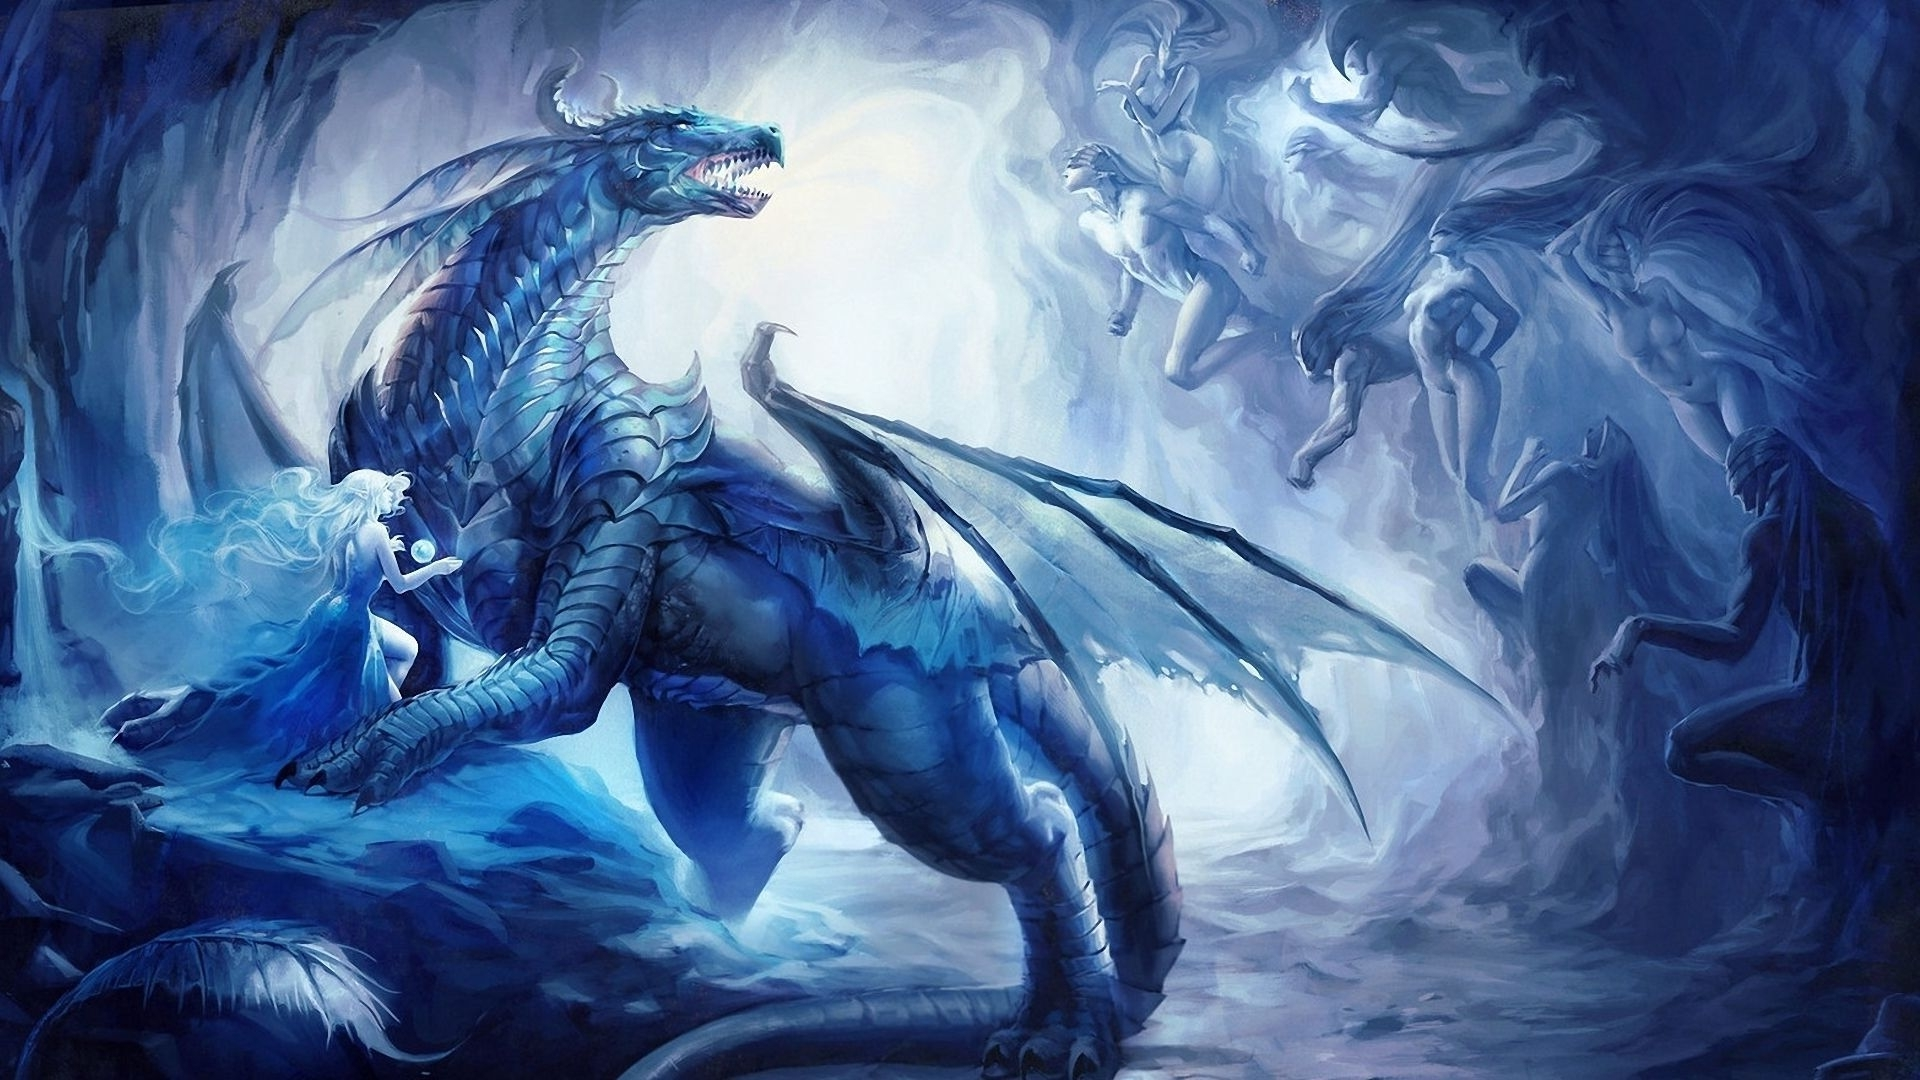 1920x1080px-KB-Blue-Dragon-wallpaper-wpc9001174